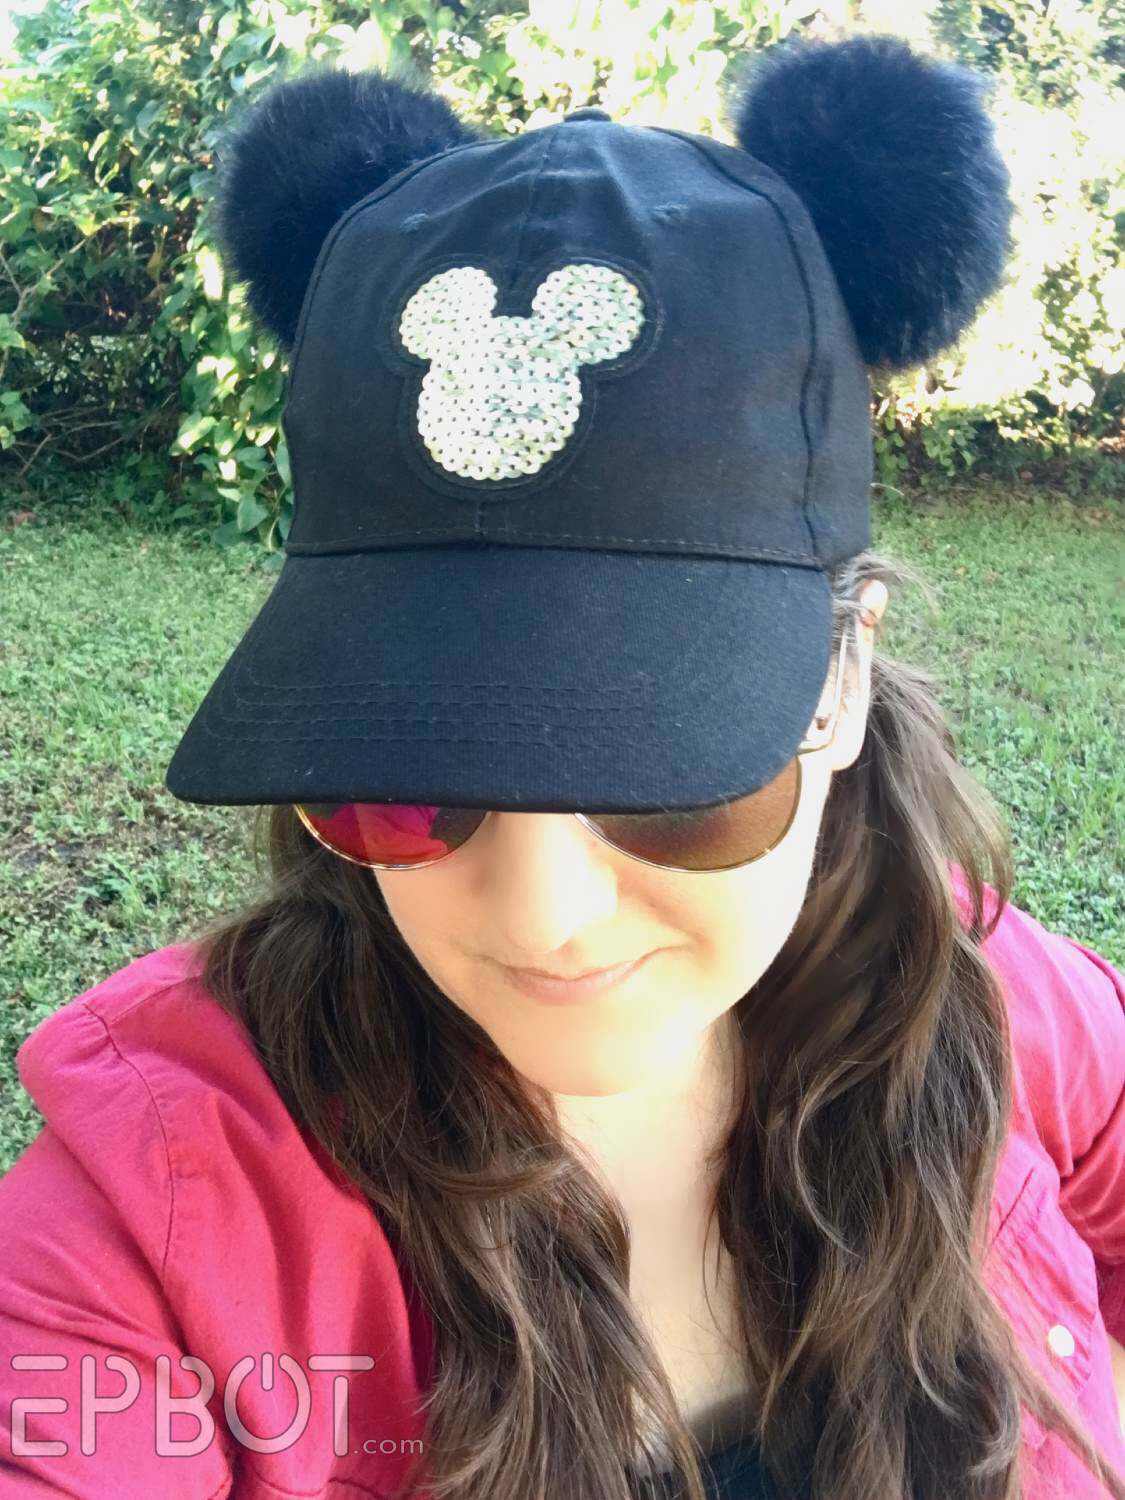 607009bce5a Ages ago I spotted a girl at the parks wearing a baseball cap with pom pom  Mickey ears